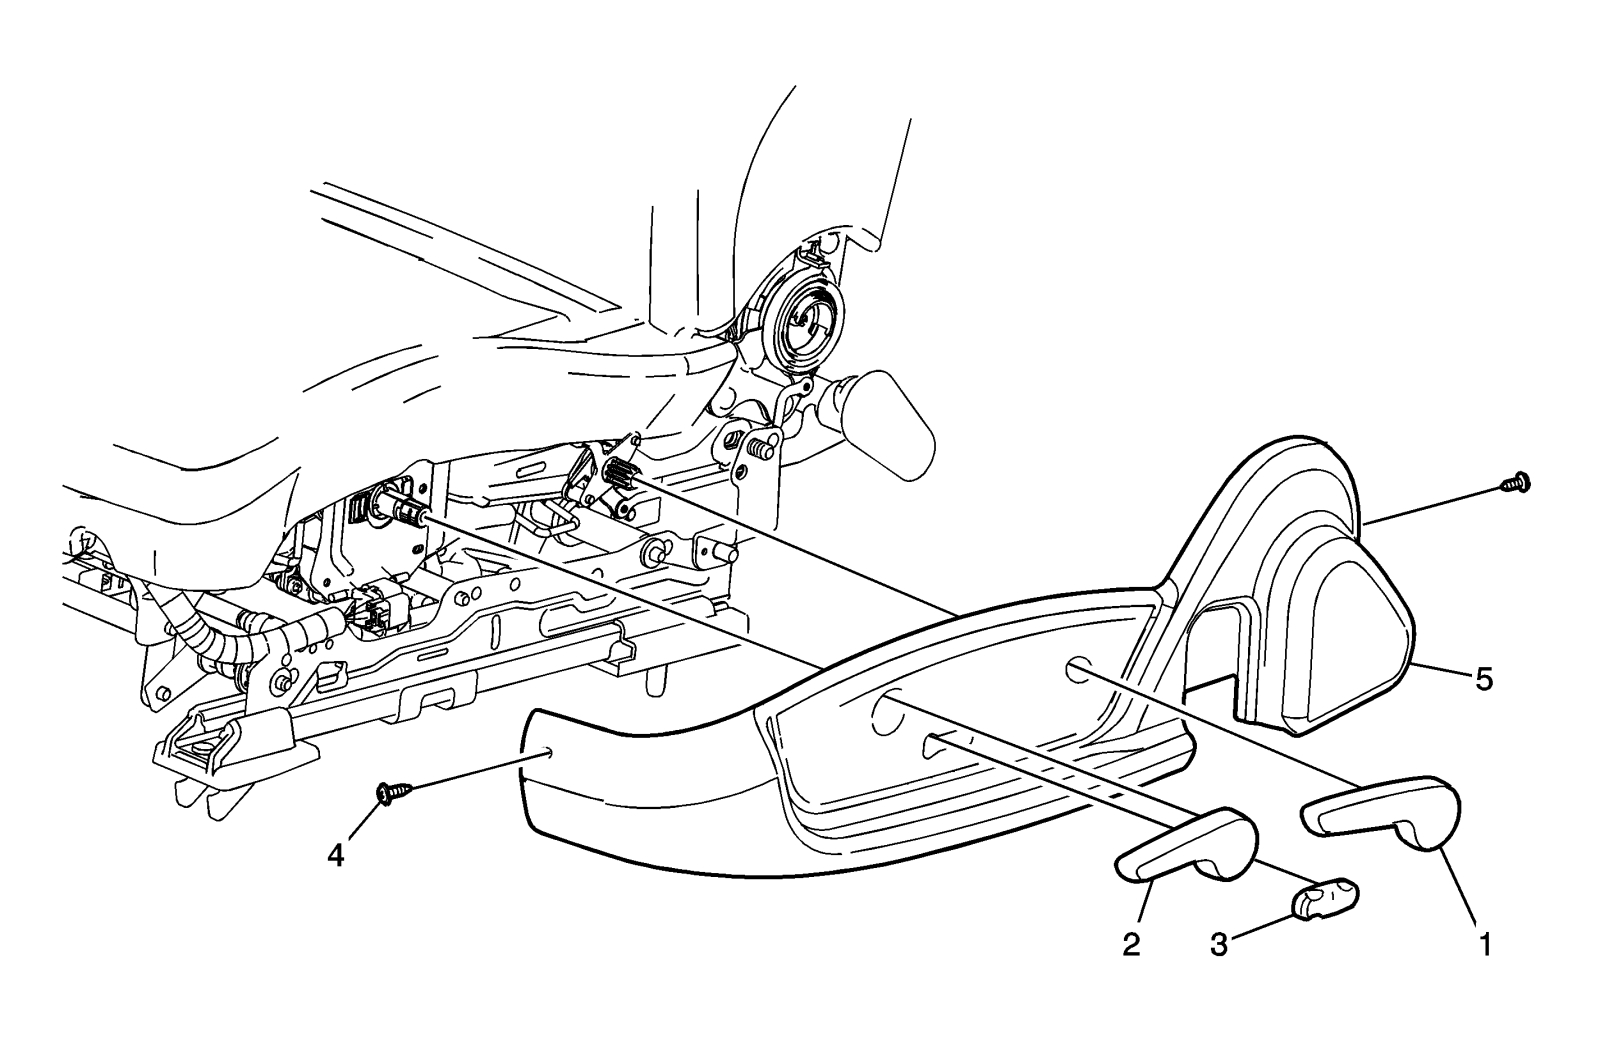 Seatbelt Pretensioner Harness Out Of Position Airbag